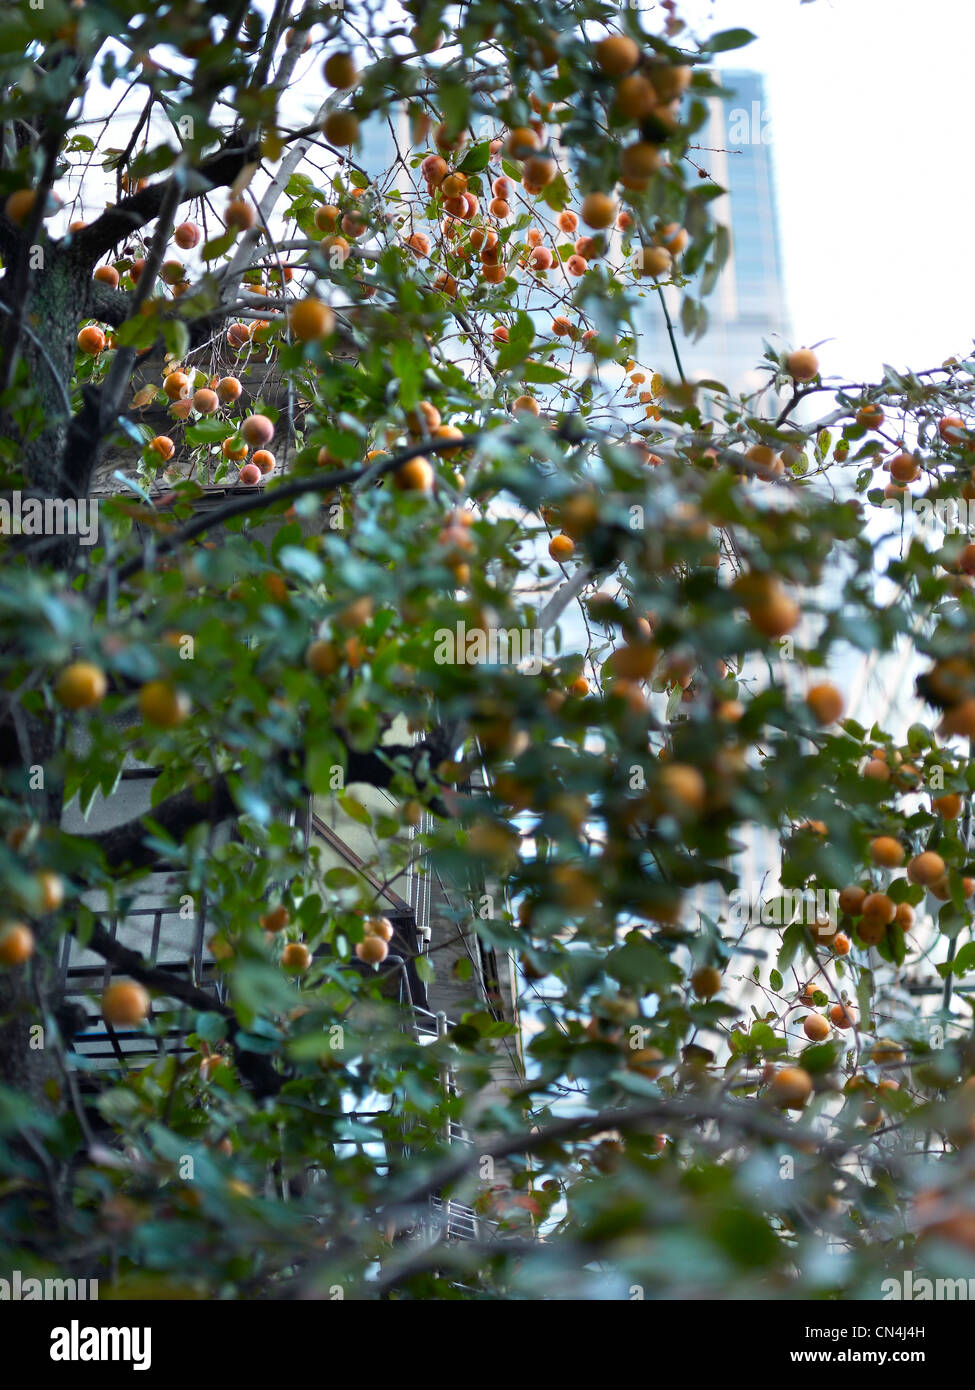 Japan, Tokyo, feature: the Palace of Tokyo, fruit tree - Stock Image